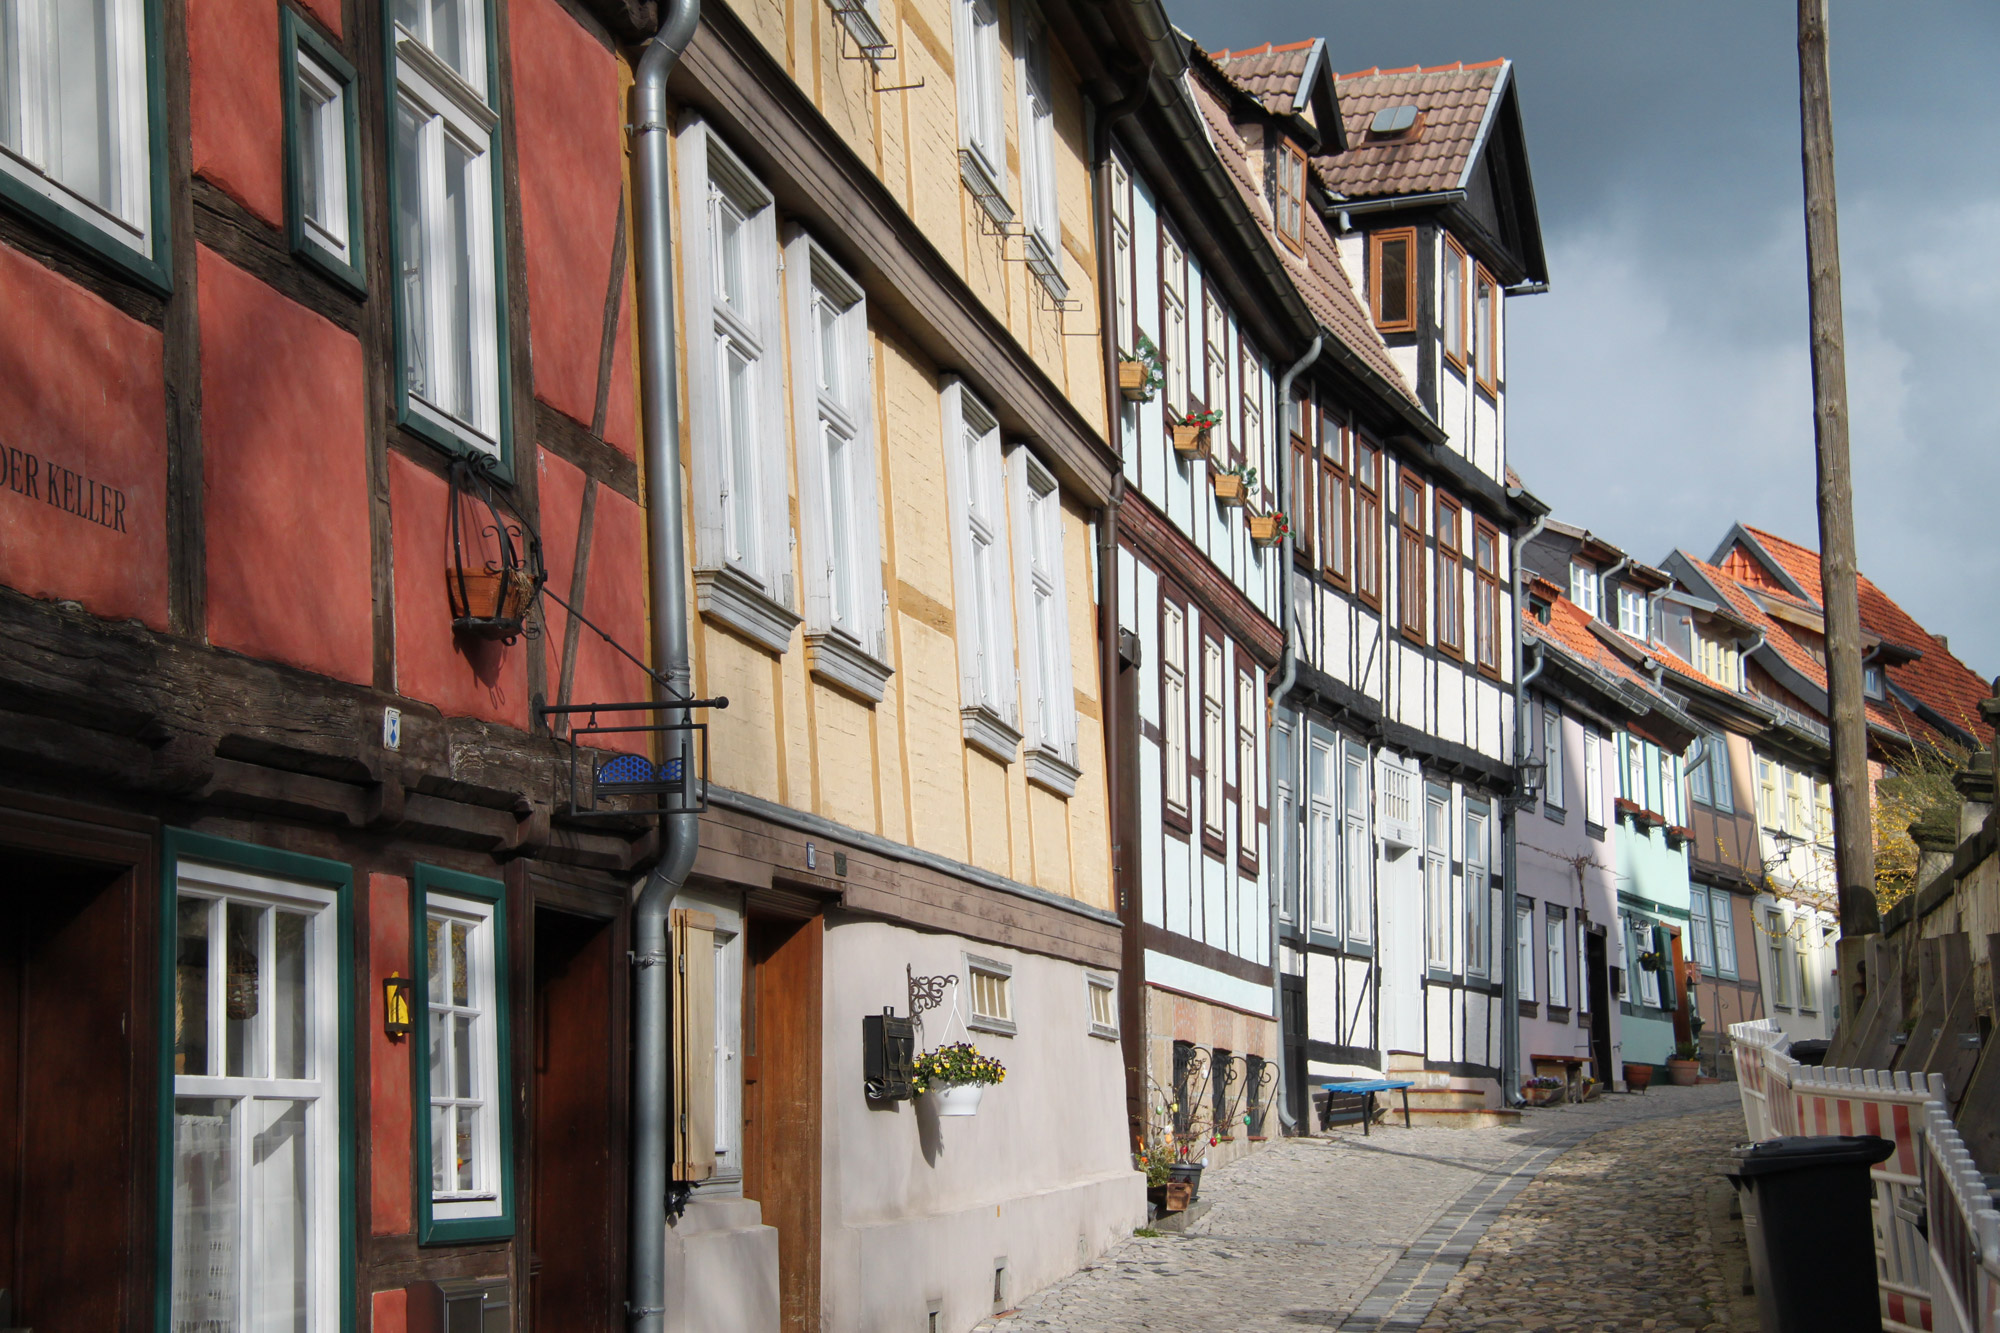 Top 5 must-do's in Quedlinburg - Verdwaal in de straten van de Altstadt